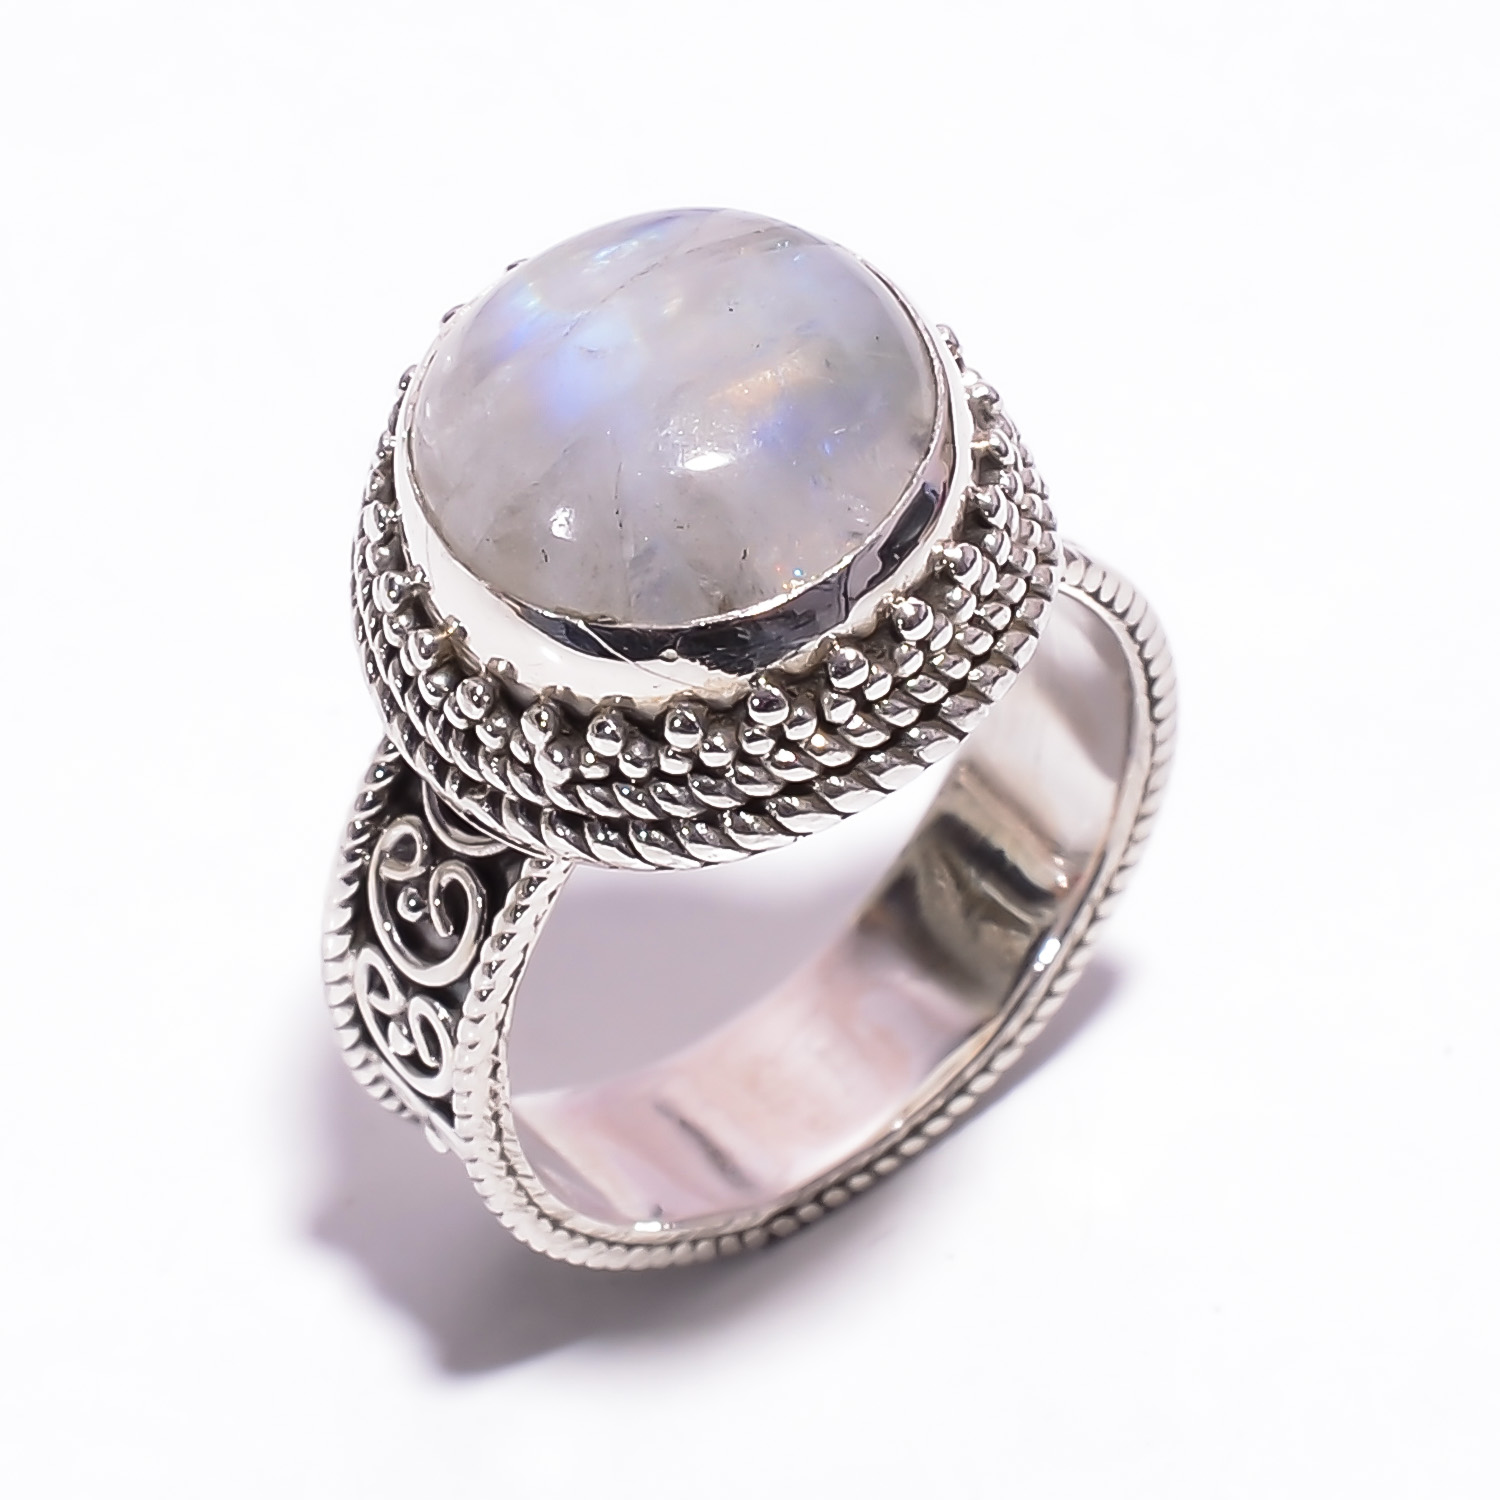 Rainbow Moonstone Gemstone 925 Sterling Silver Ring Size US 6